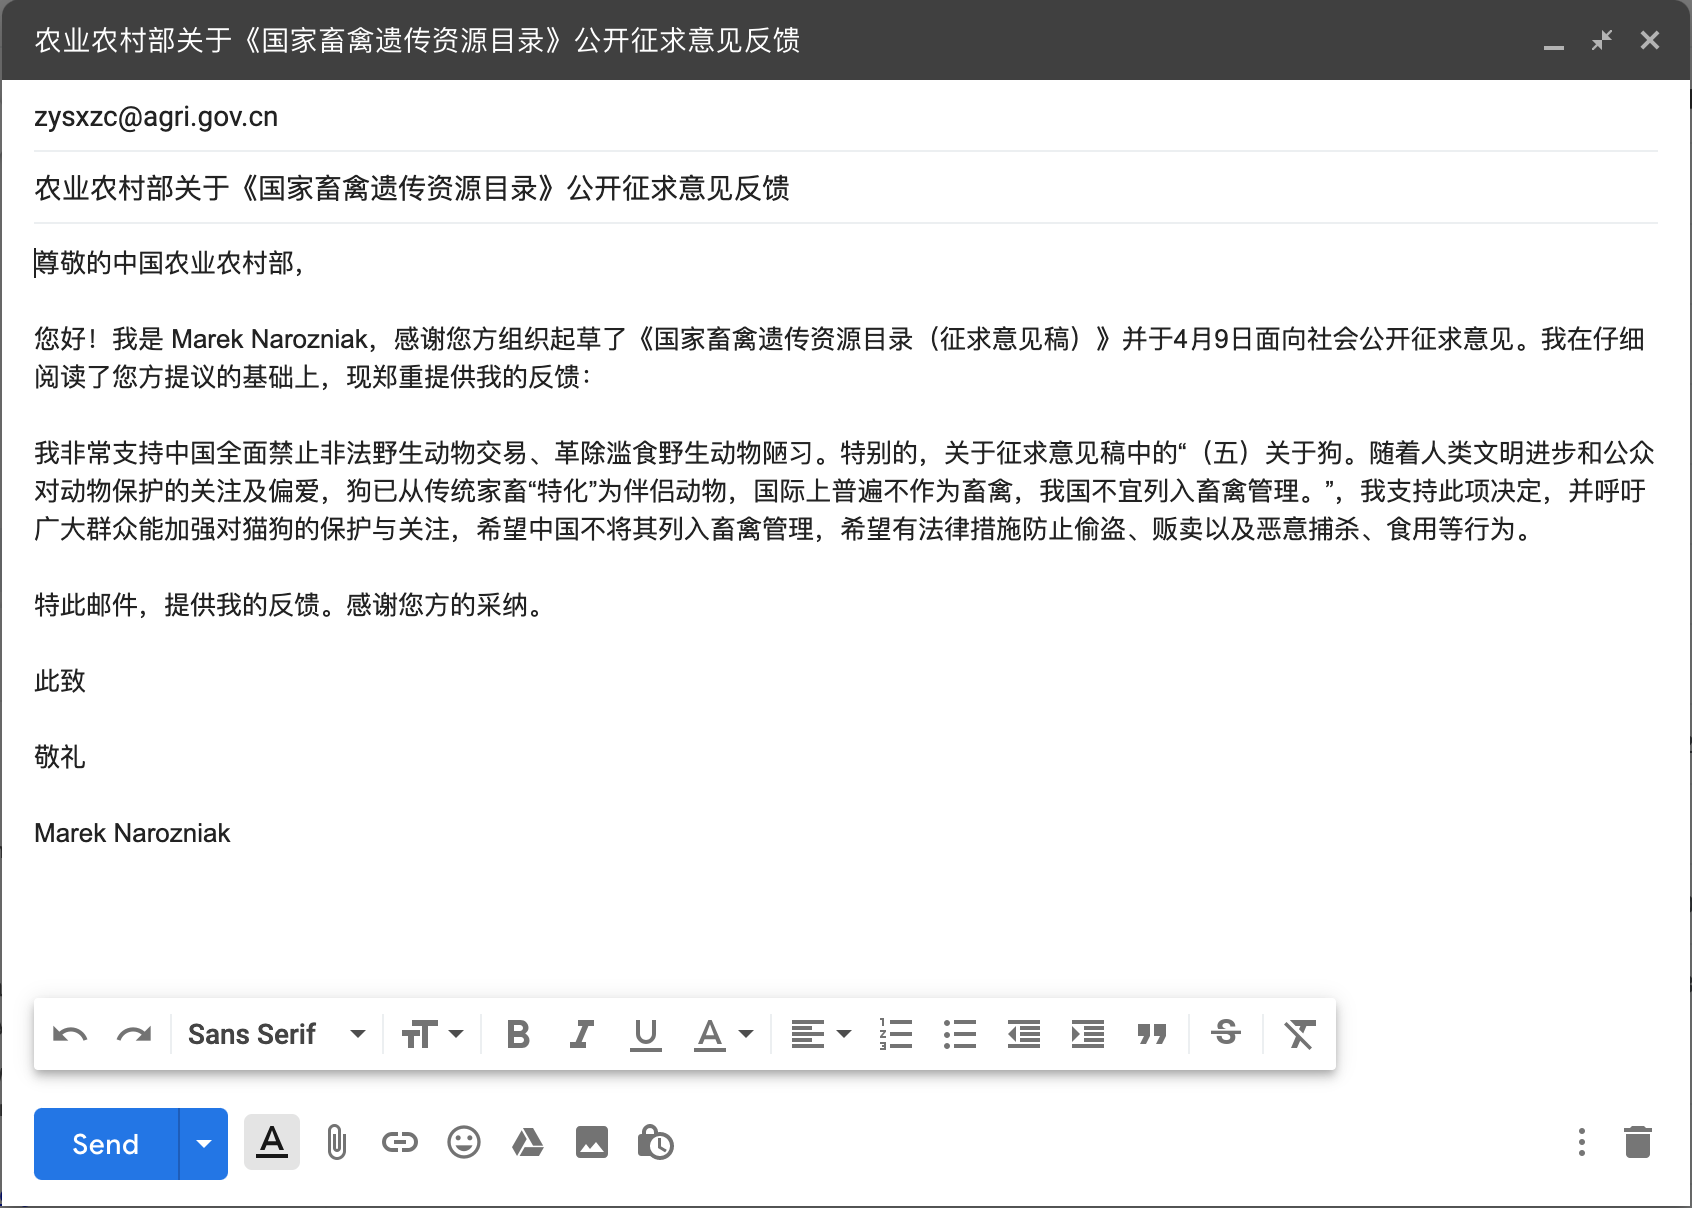 Screenshot of the e-mail draft ready to send.